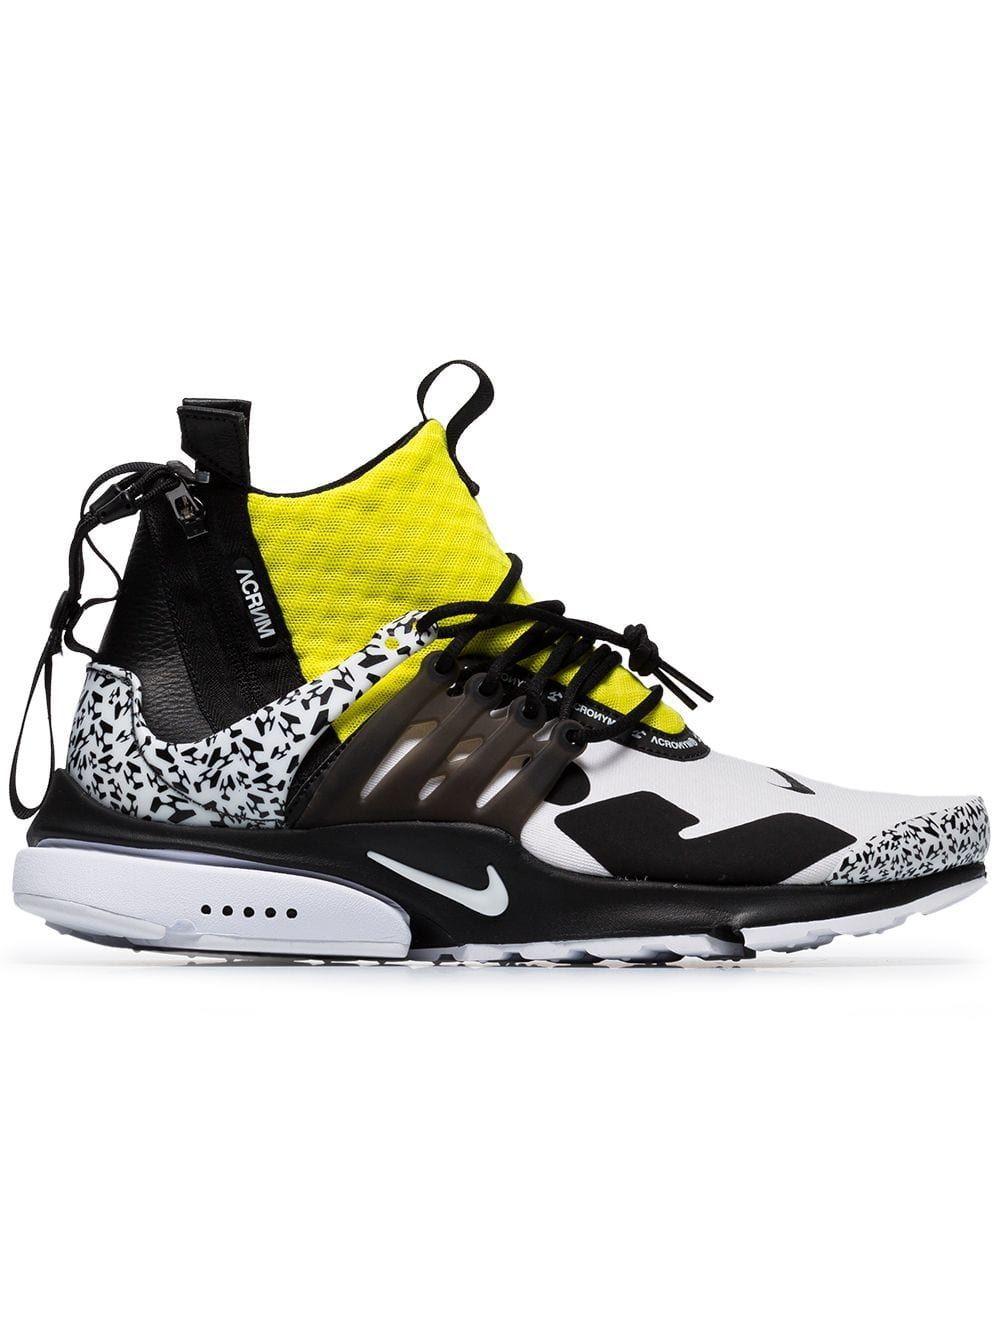 half off e205f 84a12 NIKE NIKE BLACK WHITE AND YELLOW X ACRONYM PRESTO LEATHER SNEAKERS. nike  shoes